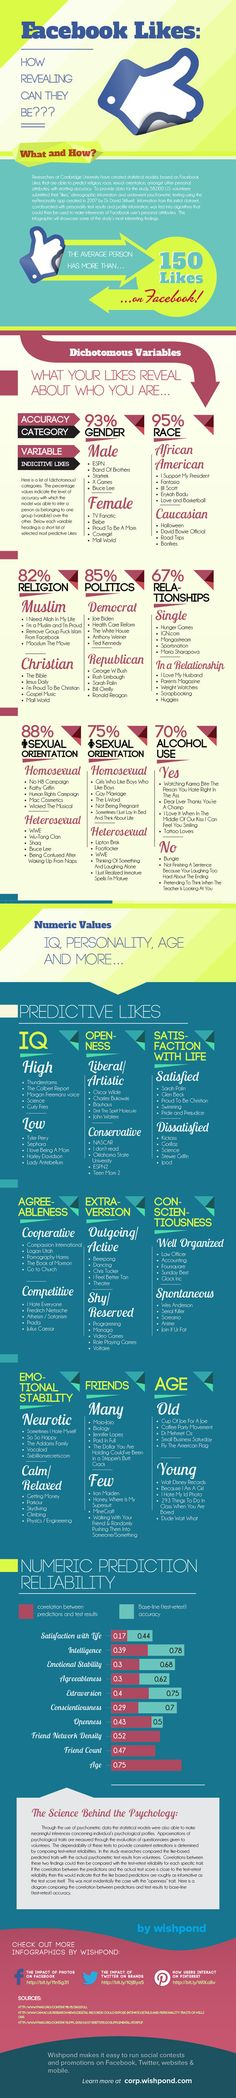 What Your Facebook Likes Say About You #infographic